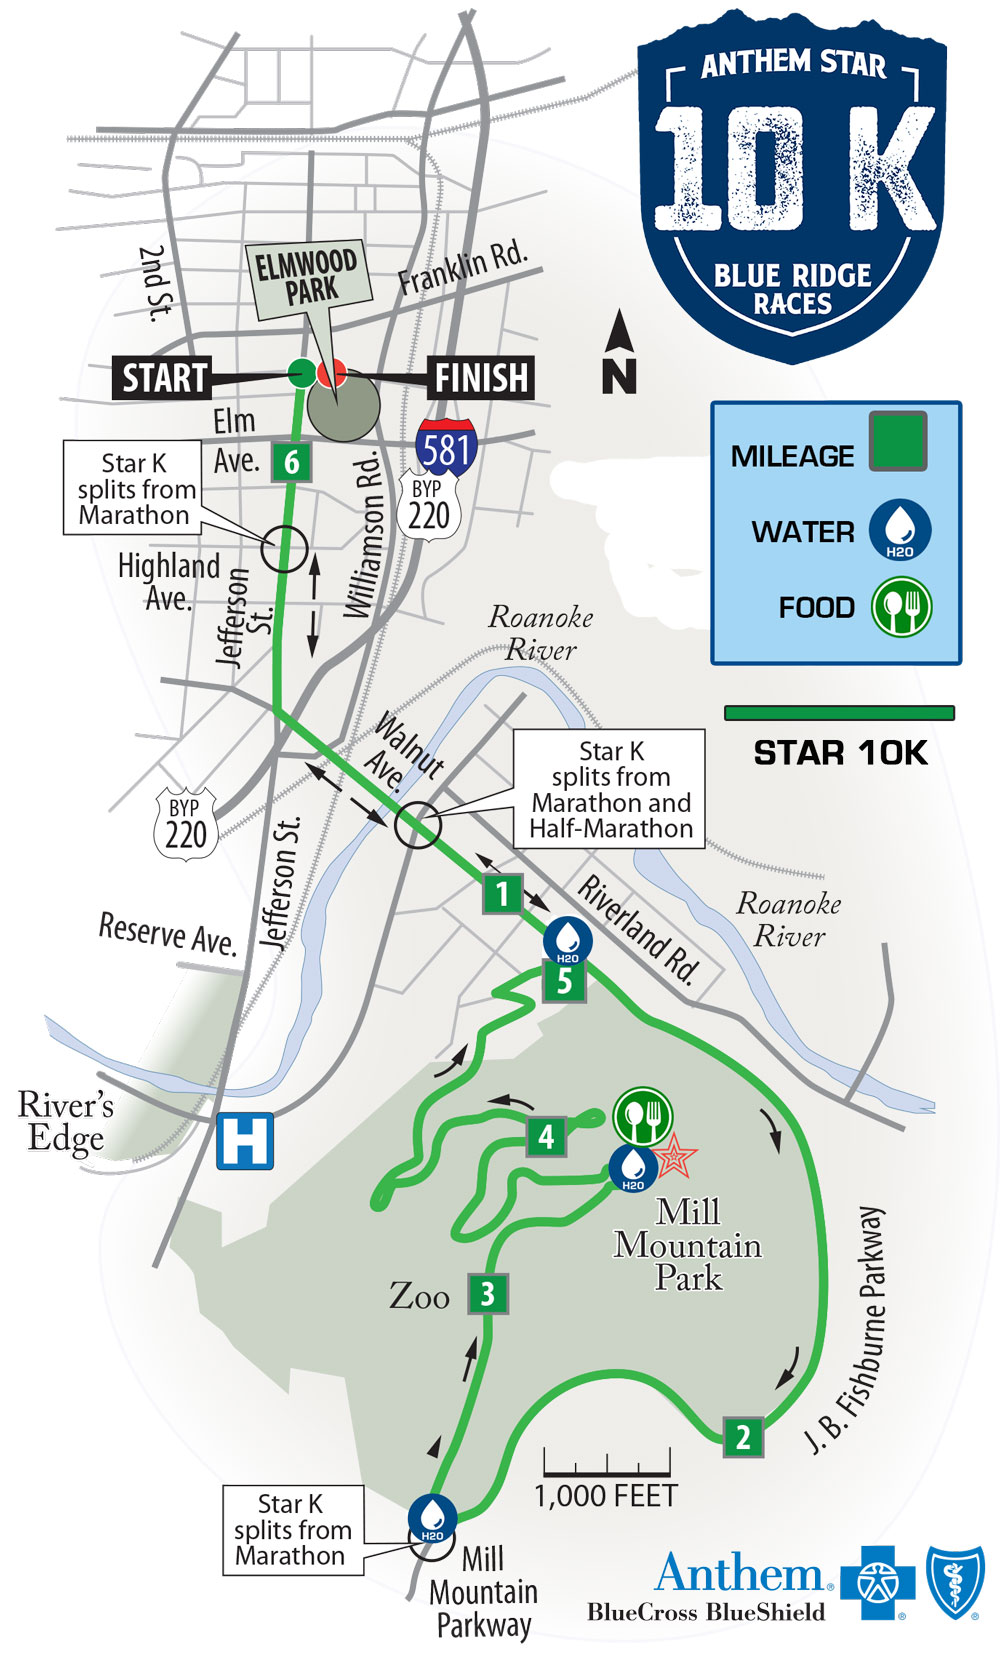 Anthem Star 10K Course Map